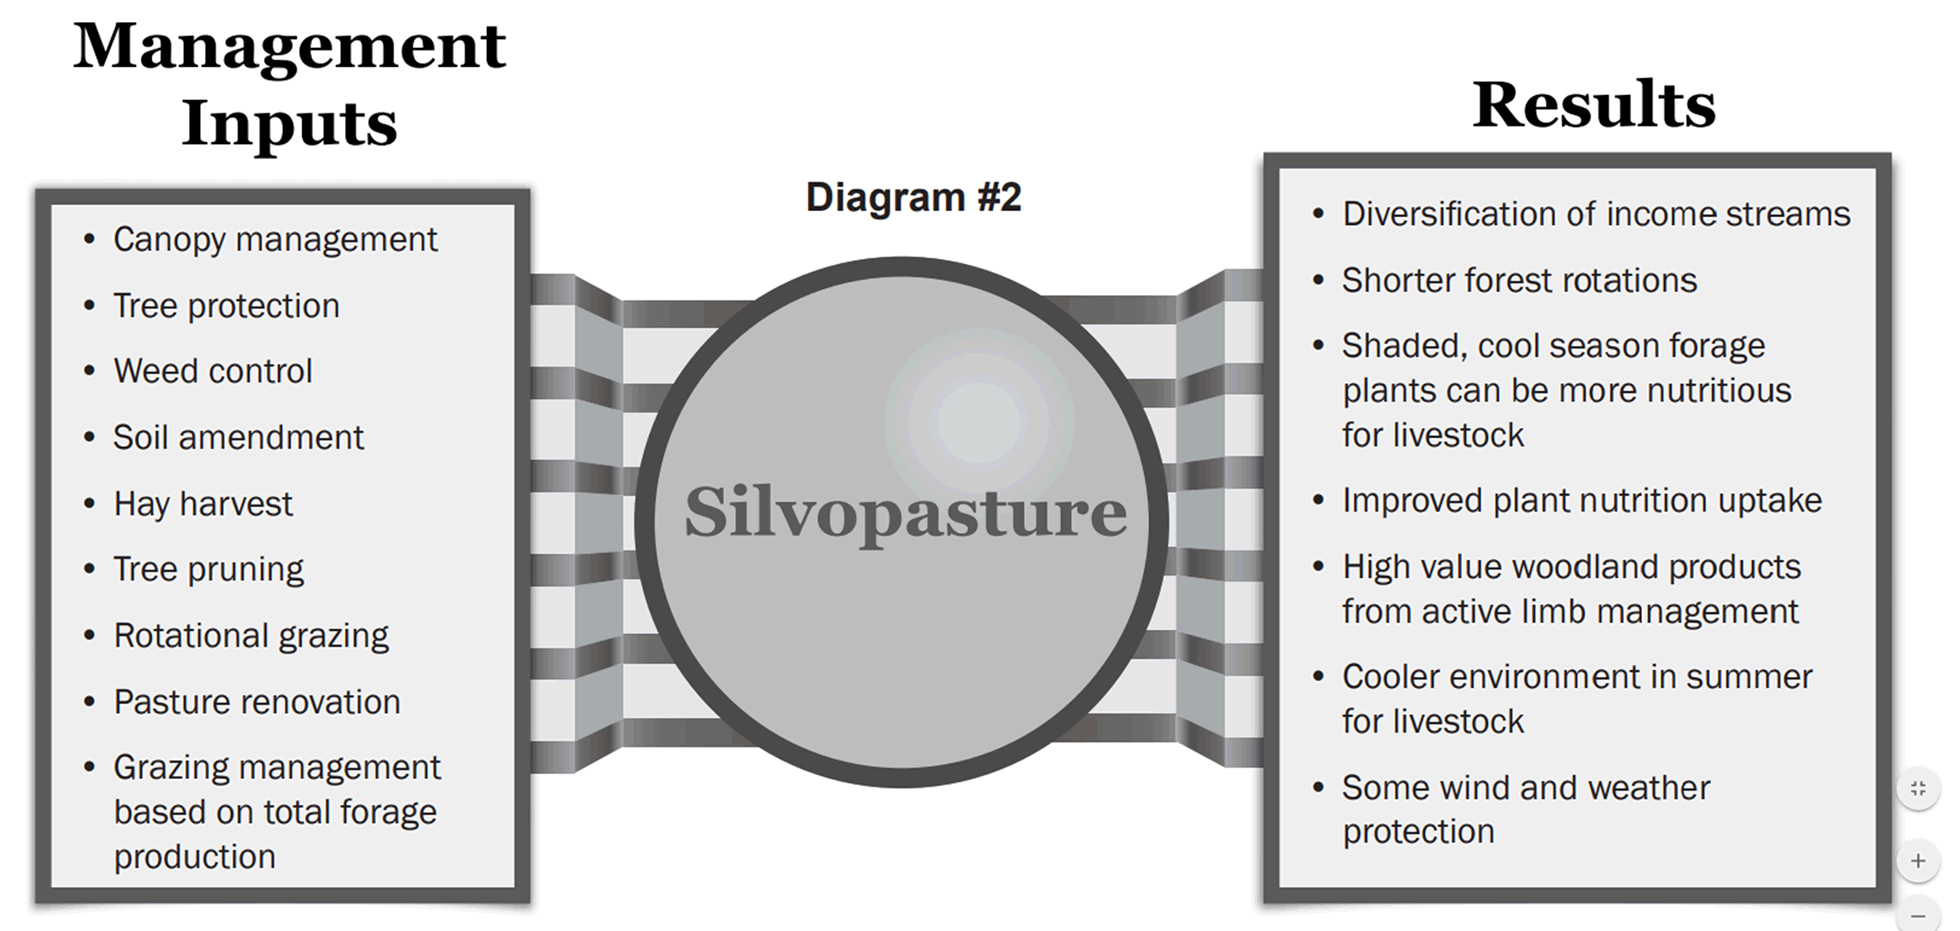 Silvopasture diagram showing management inputs on the left and results on the right.